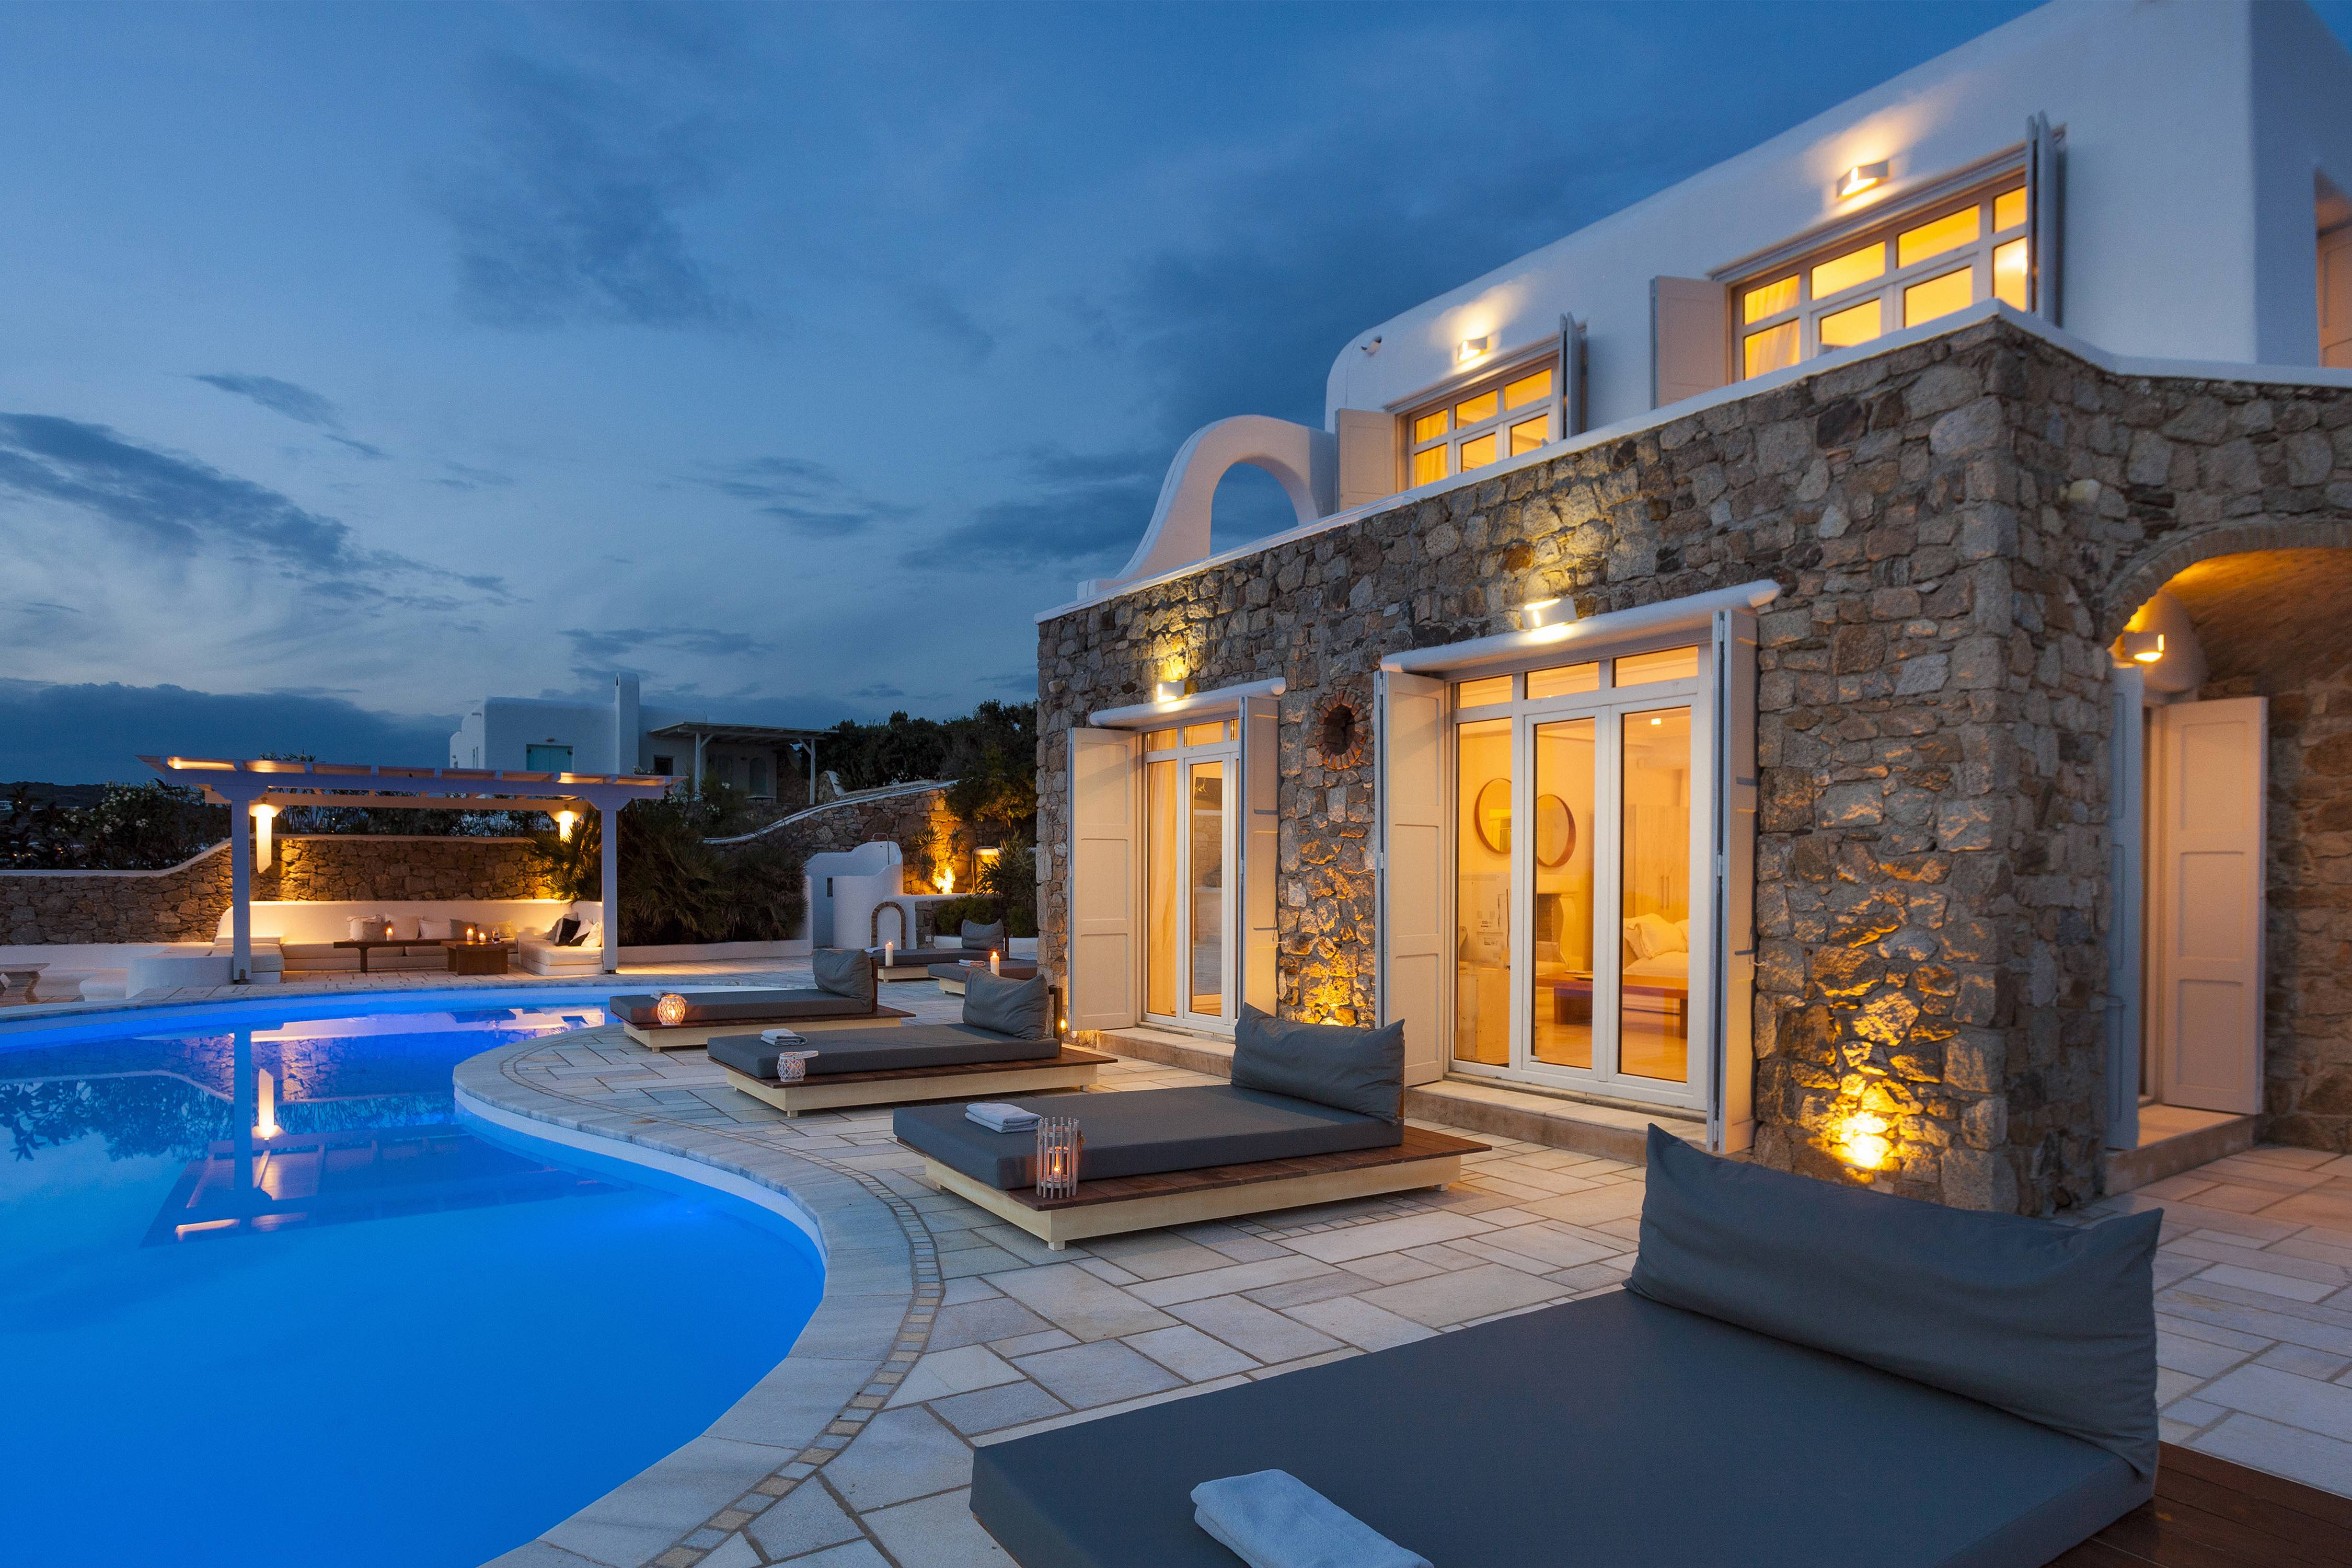 Property Image 1 - Unique 9 bedroom villa in Mykonos with private pool and panoramic views